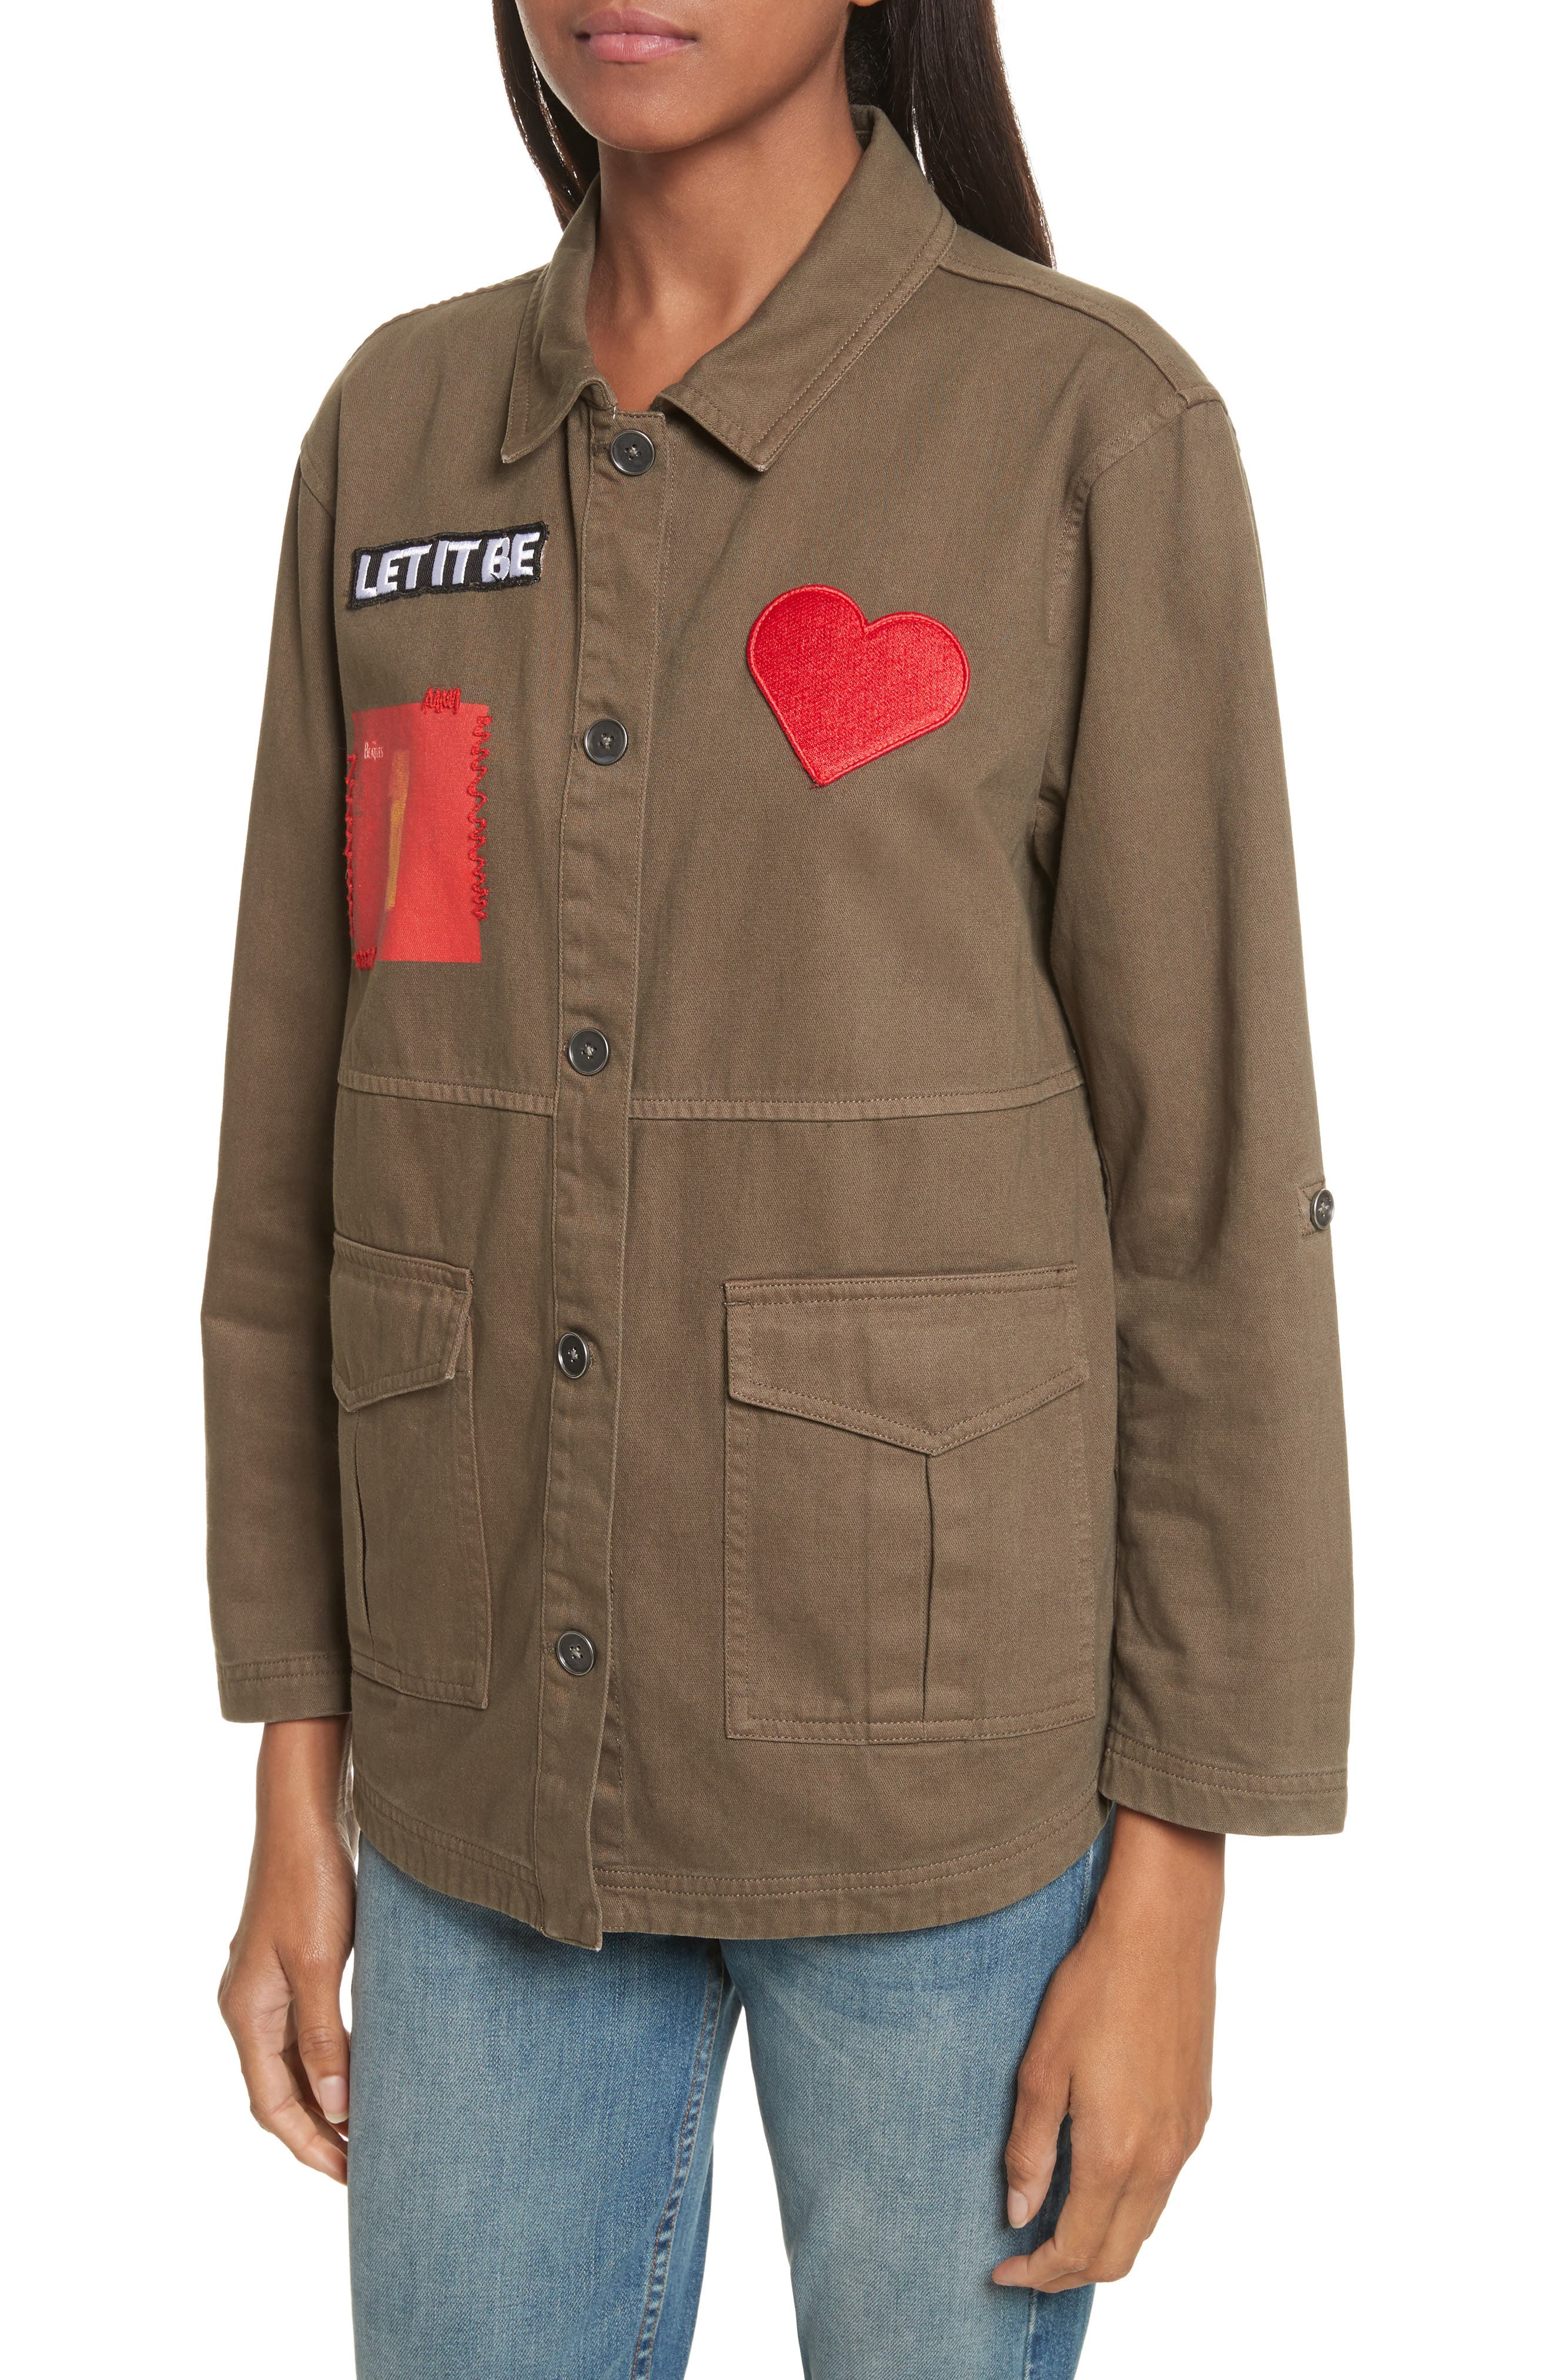 AO x The Beatles Charline Oversize Patch Military Jacket,                             Alternate thumbnail 4, color,                             315